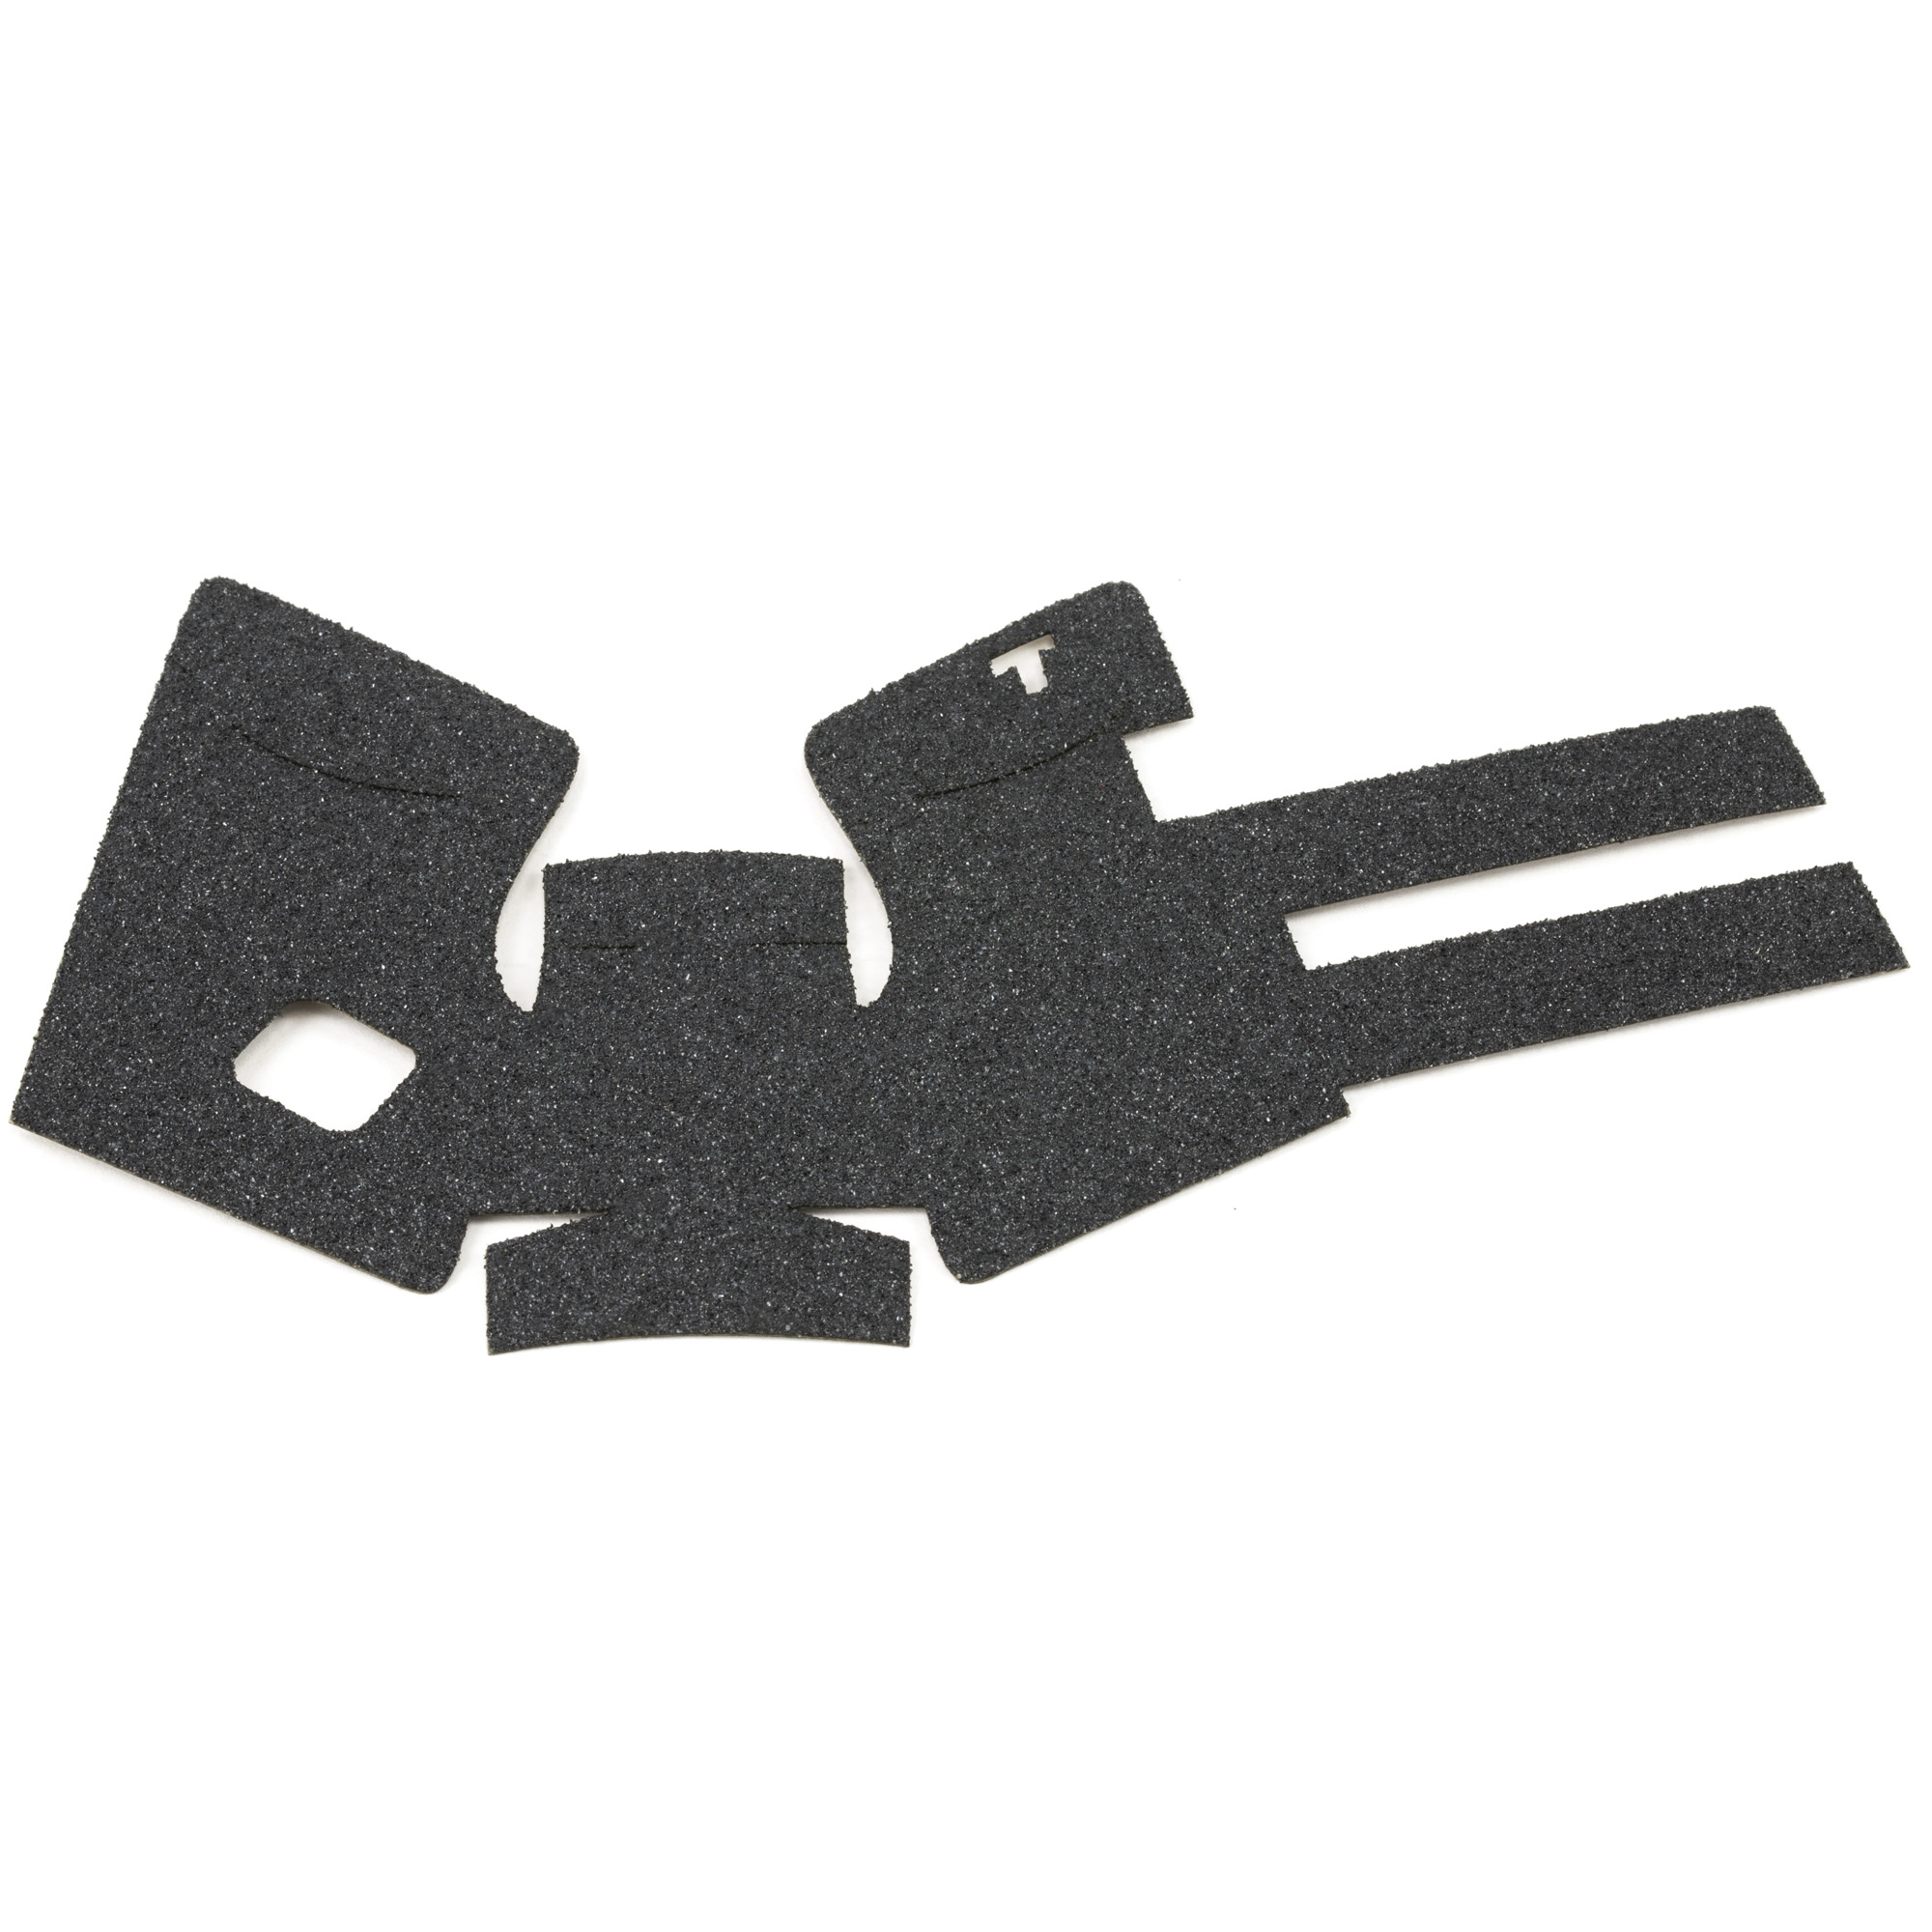 """TALON Grips for Glock Model 26"""" 27"""" 28"""" 33"""" and 39 models Gen 2.5"""" 3. This rear wrap grip is in the granulate texture. This grip provides full coverage on the side panels including above the thumb rest"""" ample coverage on the backstrap"""" and two finger wraps for the finger grooves under the trigger guard. This grip has a logo cutout for the Glock emblem on the left side of the handle. This grip sticks extremely well even with the Rough Textured Frame (RTF)."""